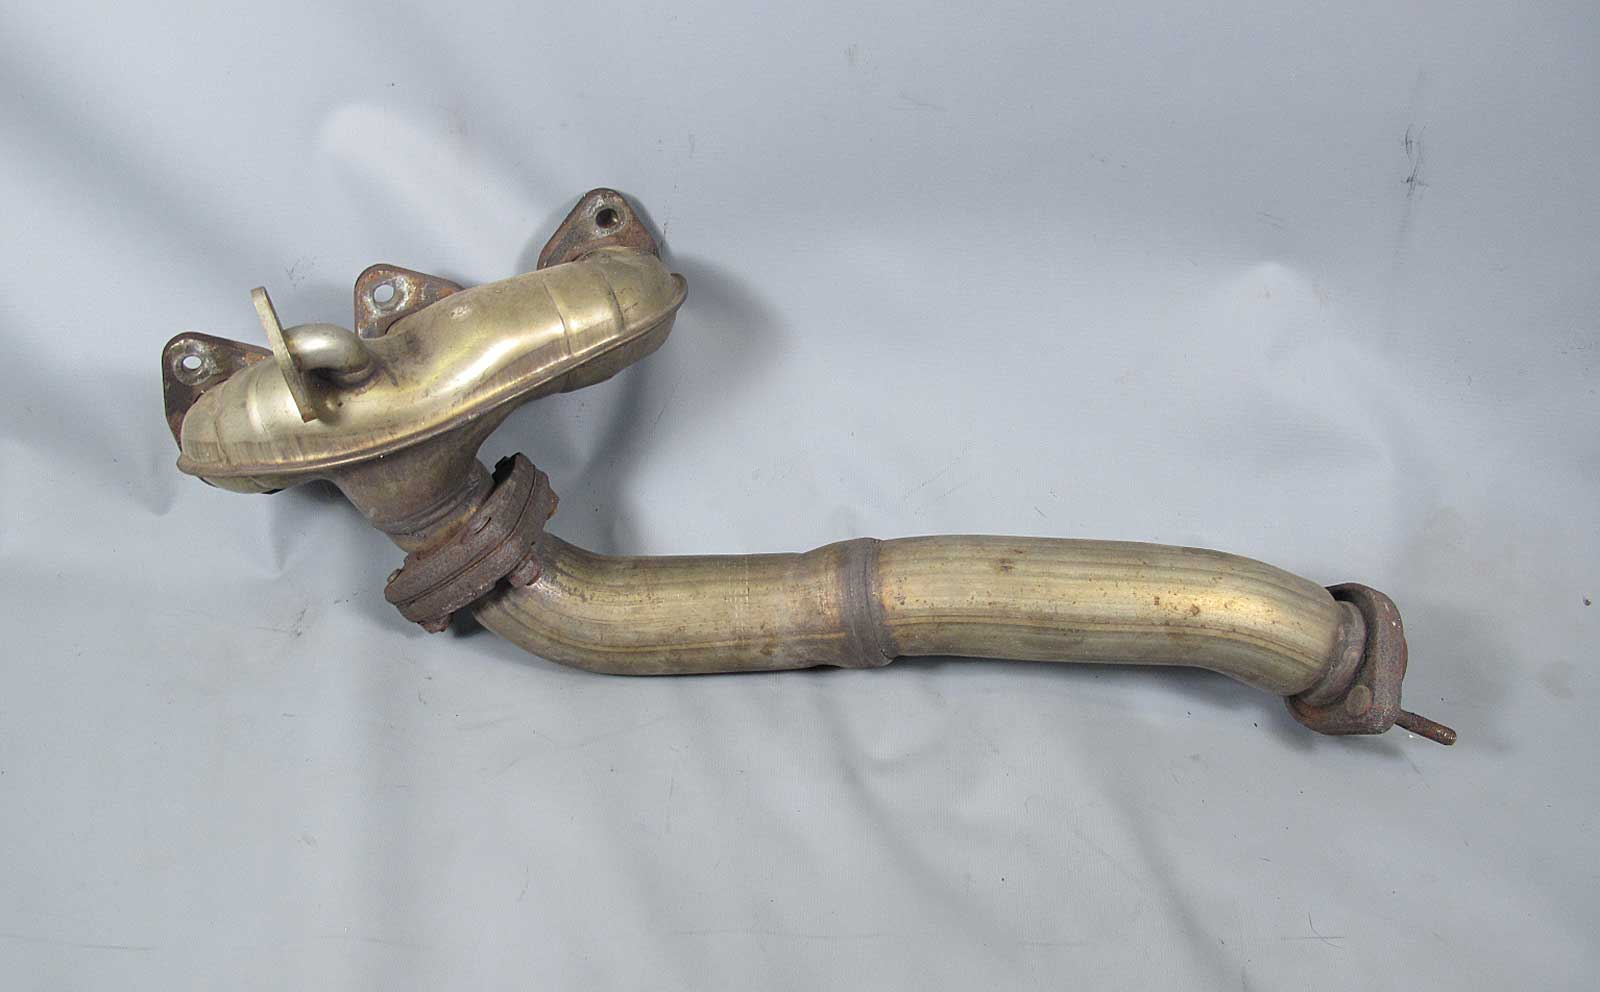 Details about BMW E38 750 E31 850Ci Left Rear Exhaust Manifold w Pipe Bank  2 Cyls 10-12 USED